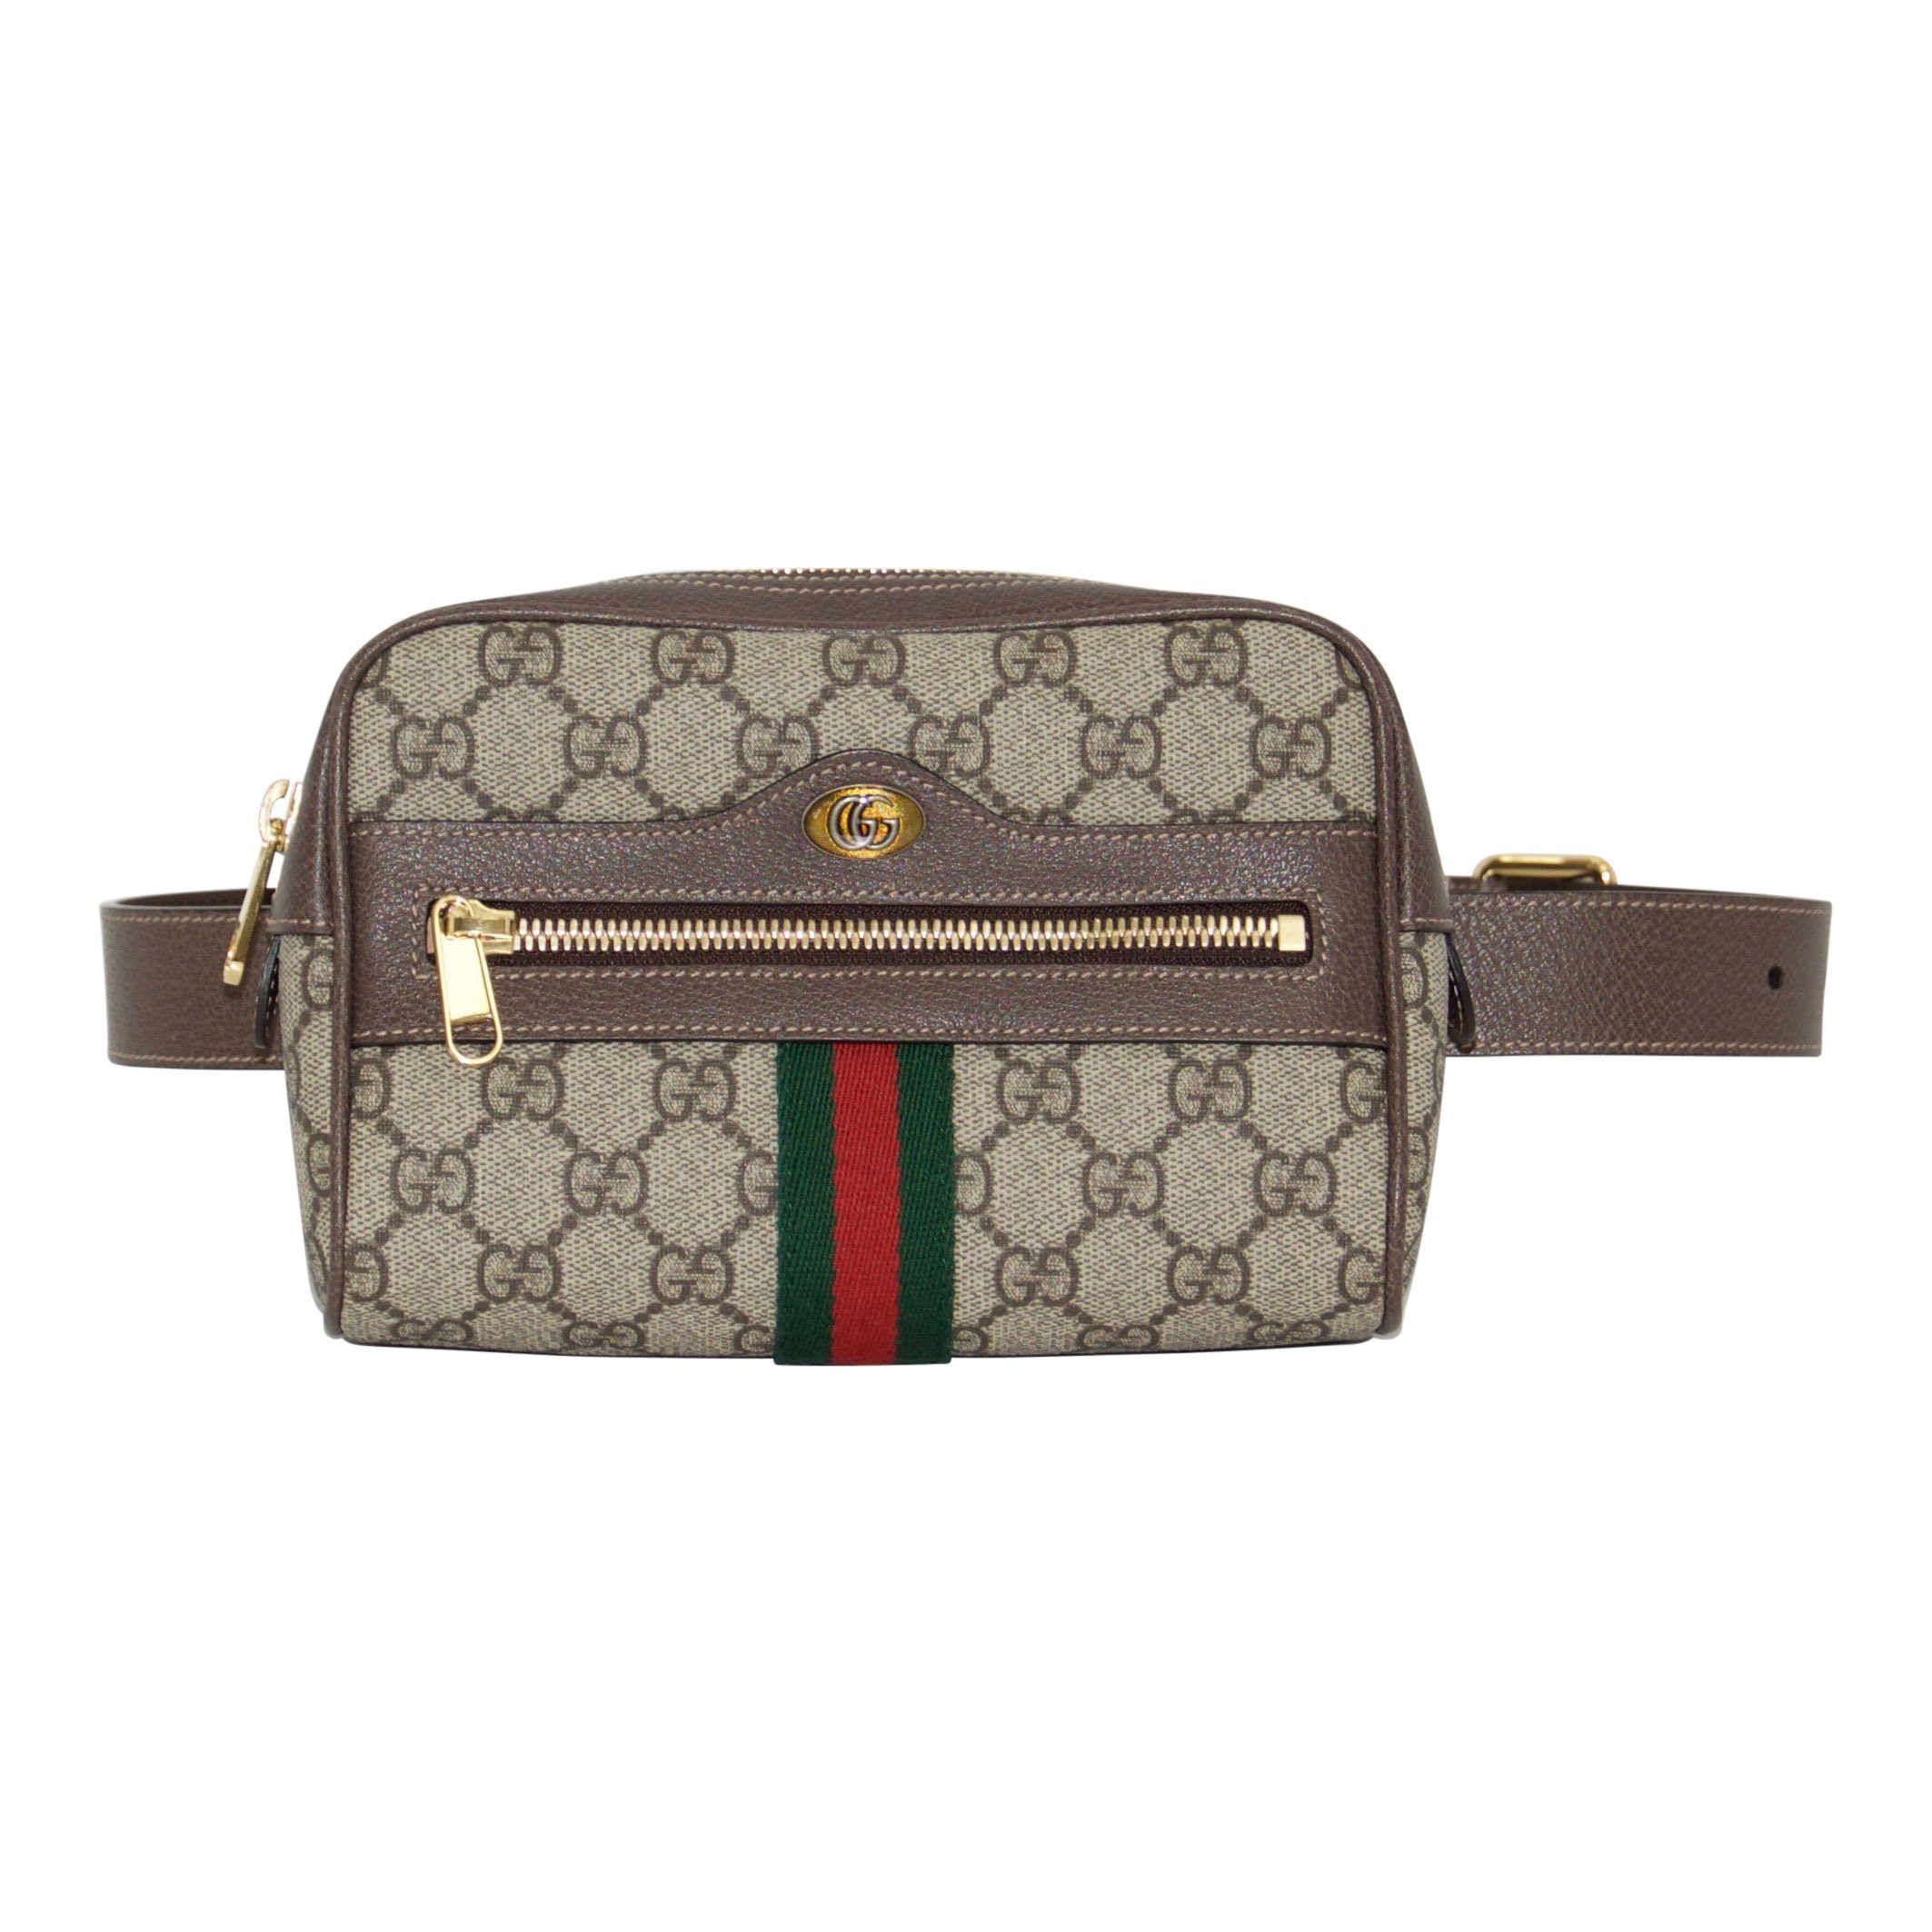 9b7350a11ab0 Gucci Ophidia GG Supreme Small Belt Bag– Oliver Jewellery